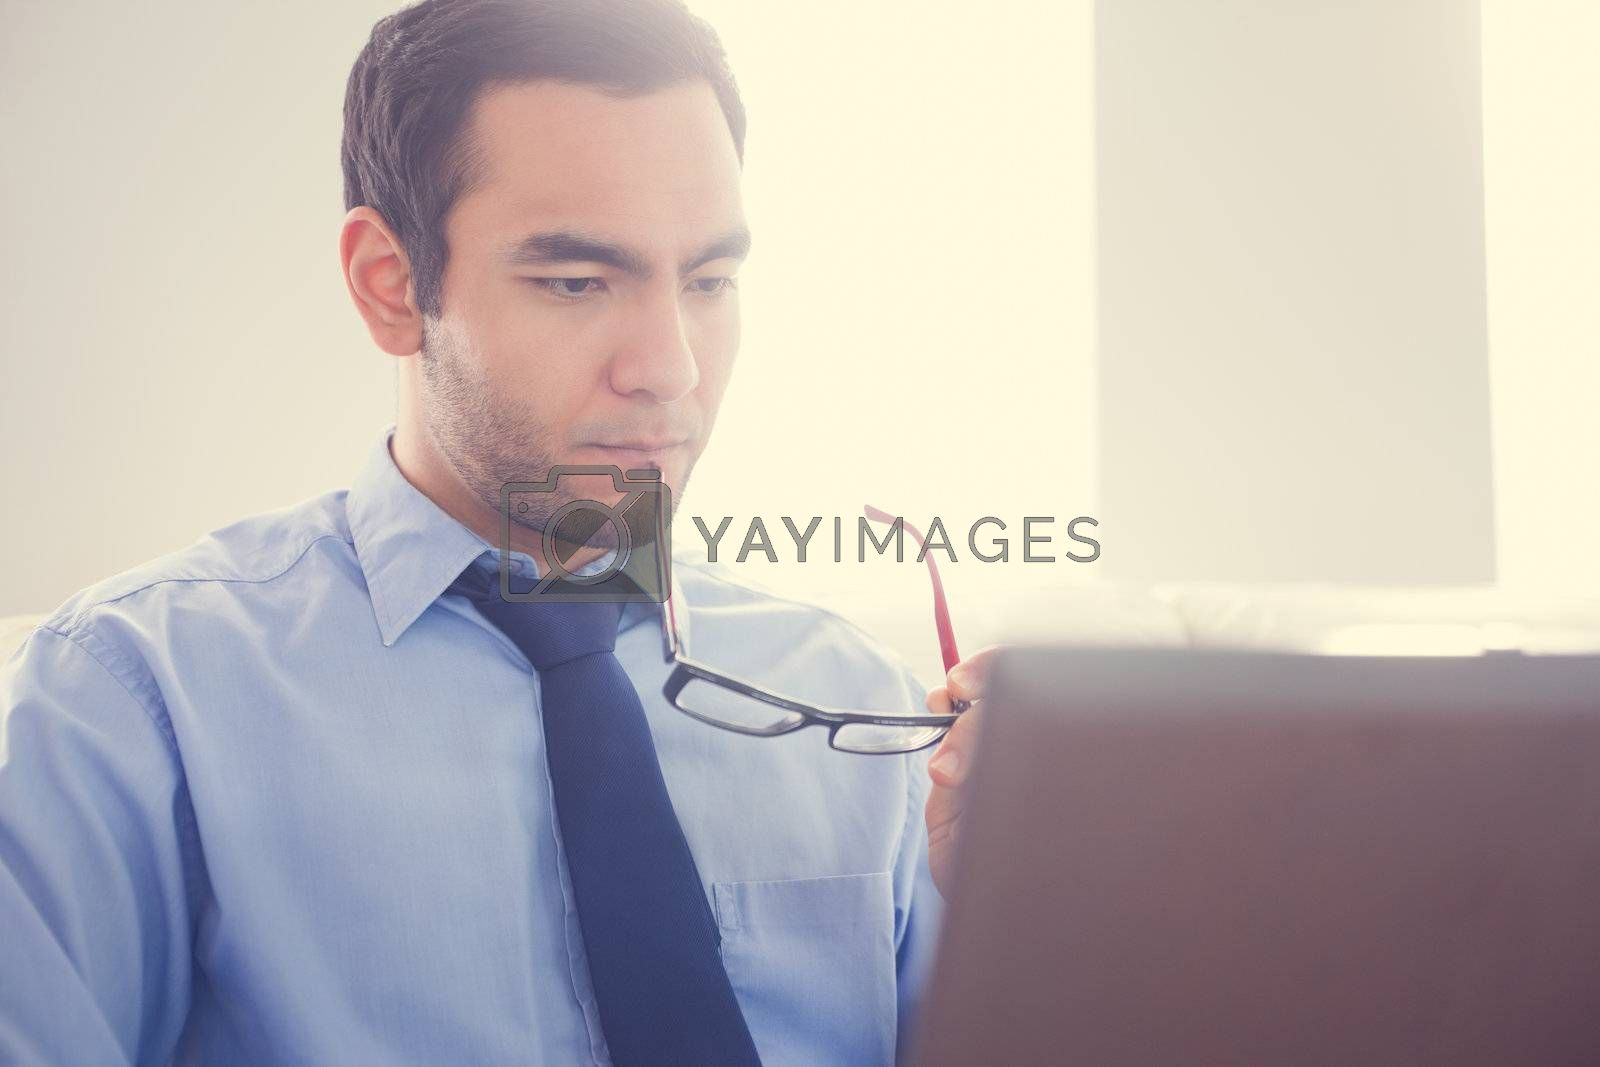 Unsmiling man biting his eyeglasses and using a laptop by Wavebreakmedia